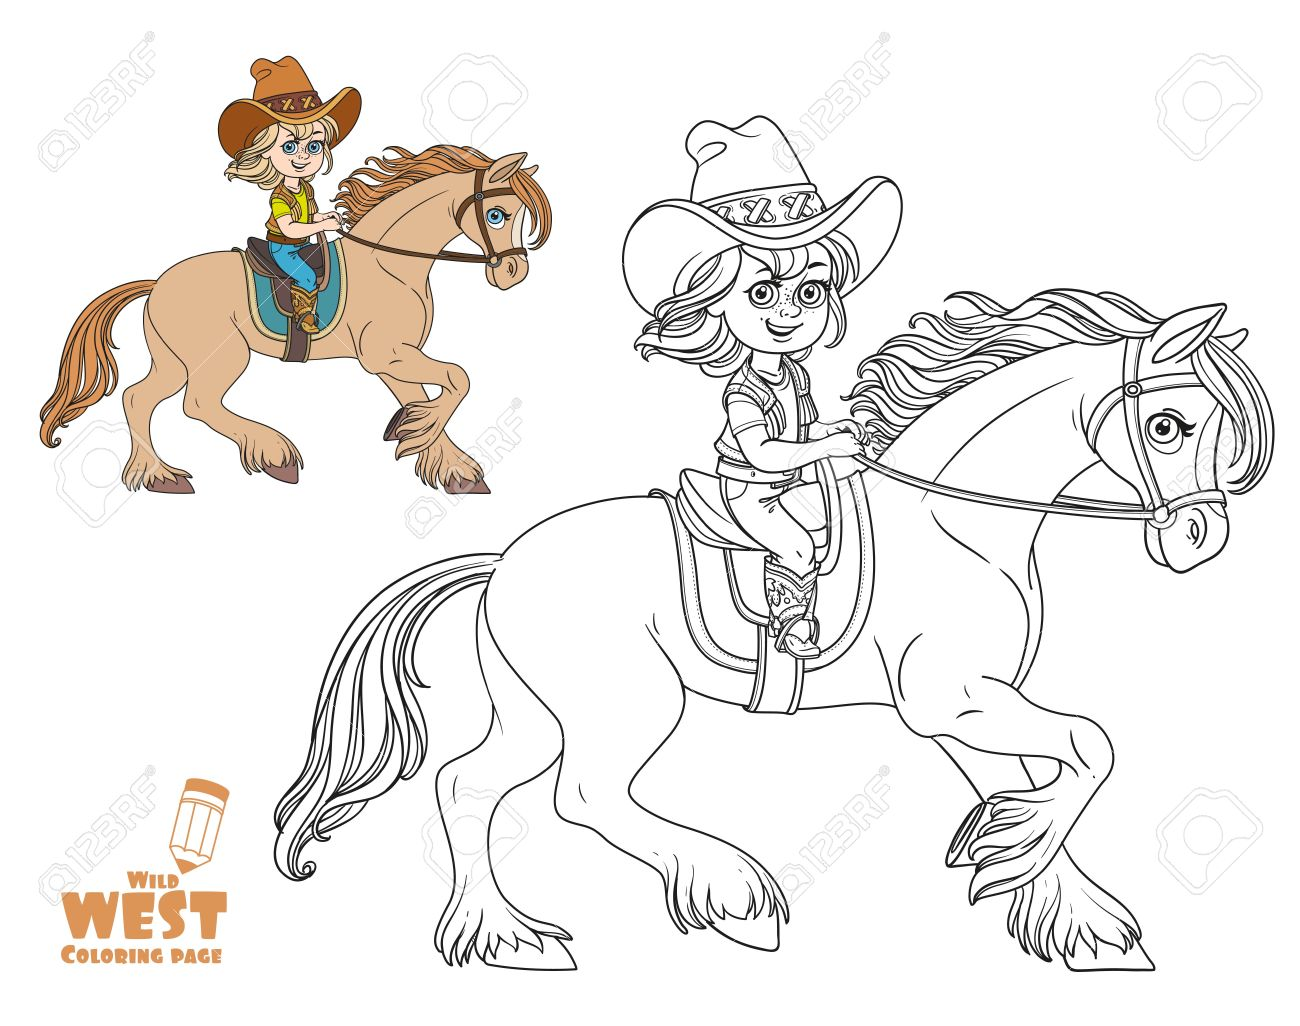 Girl Riding Horse Drawing at GetDrawings.com | Free for personal use ...